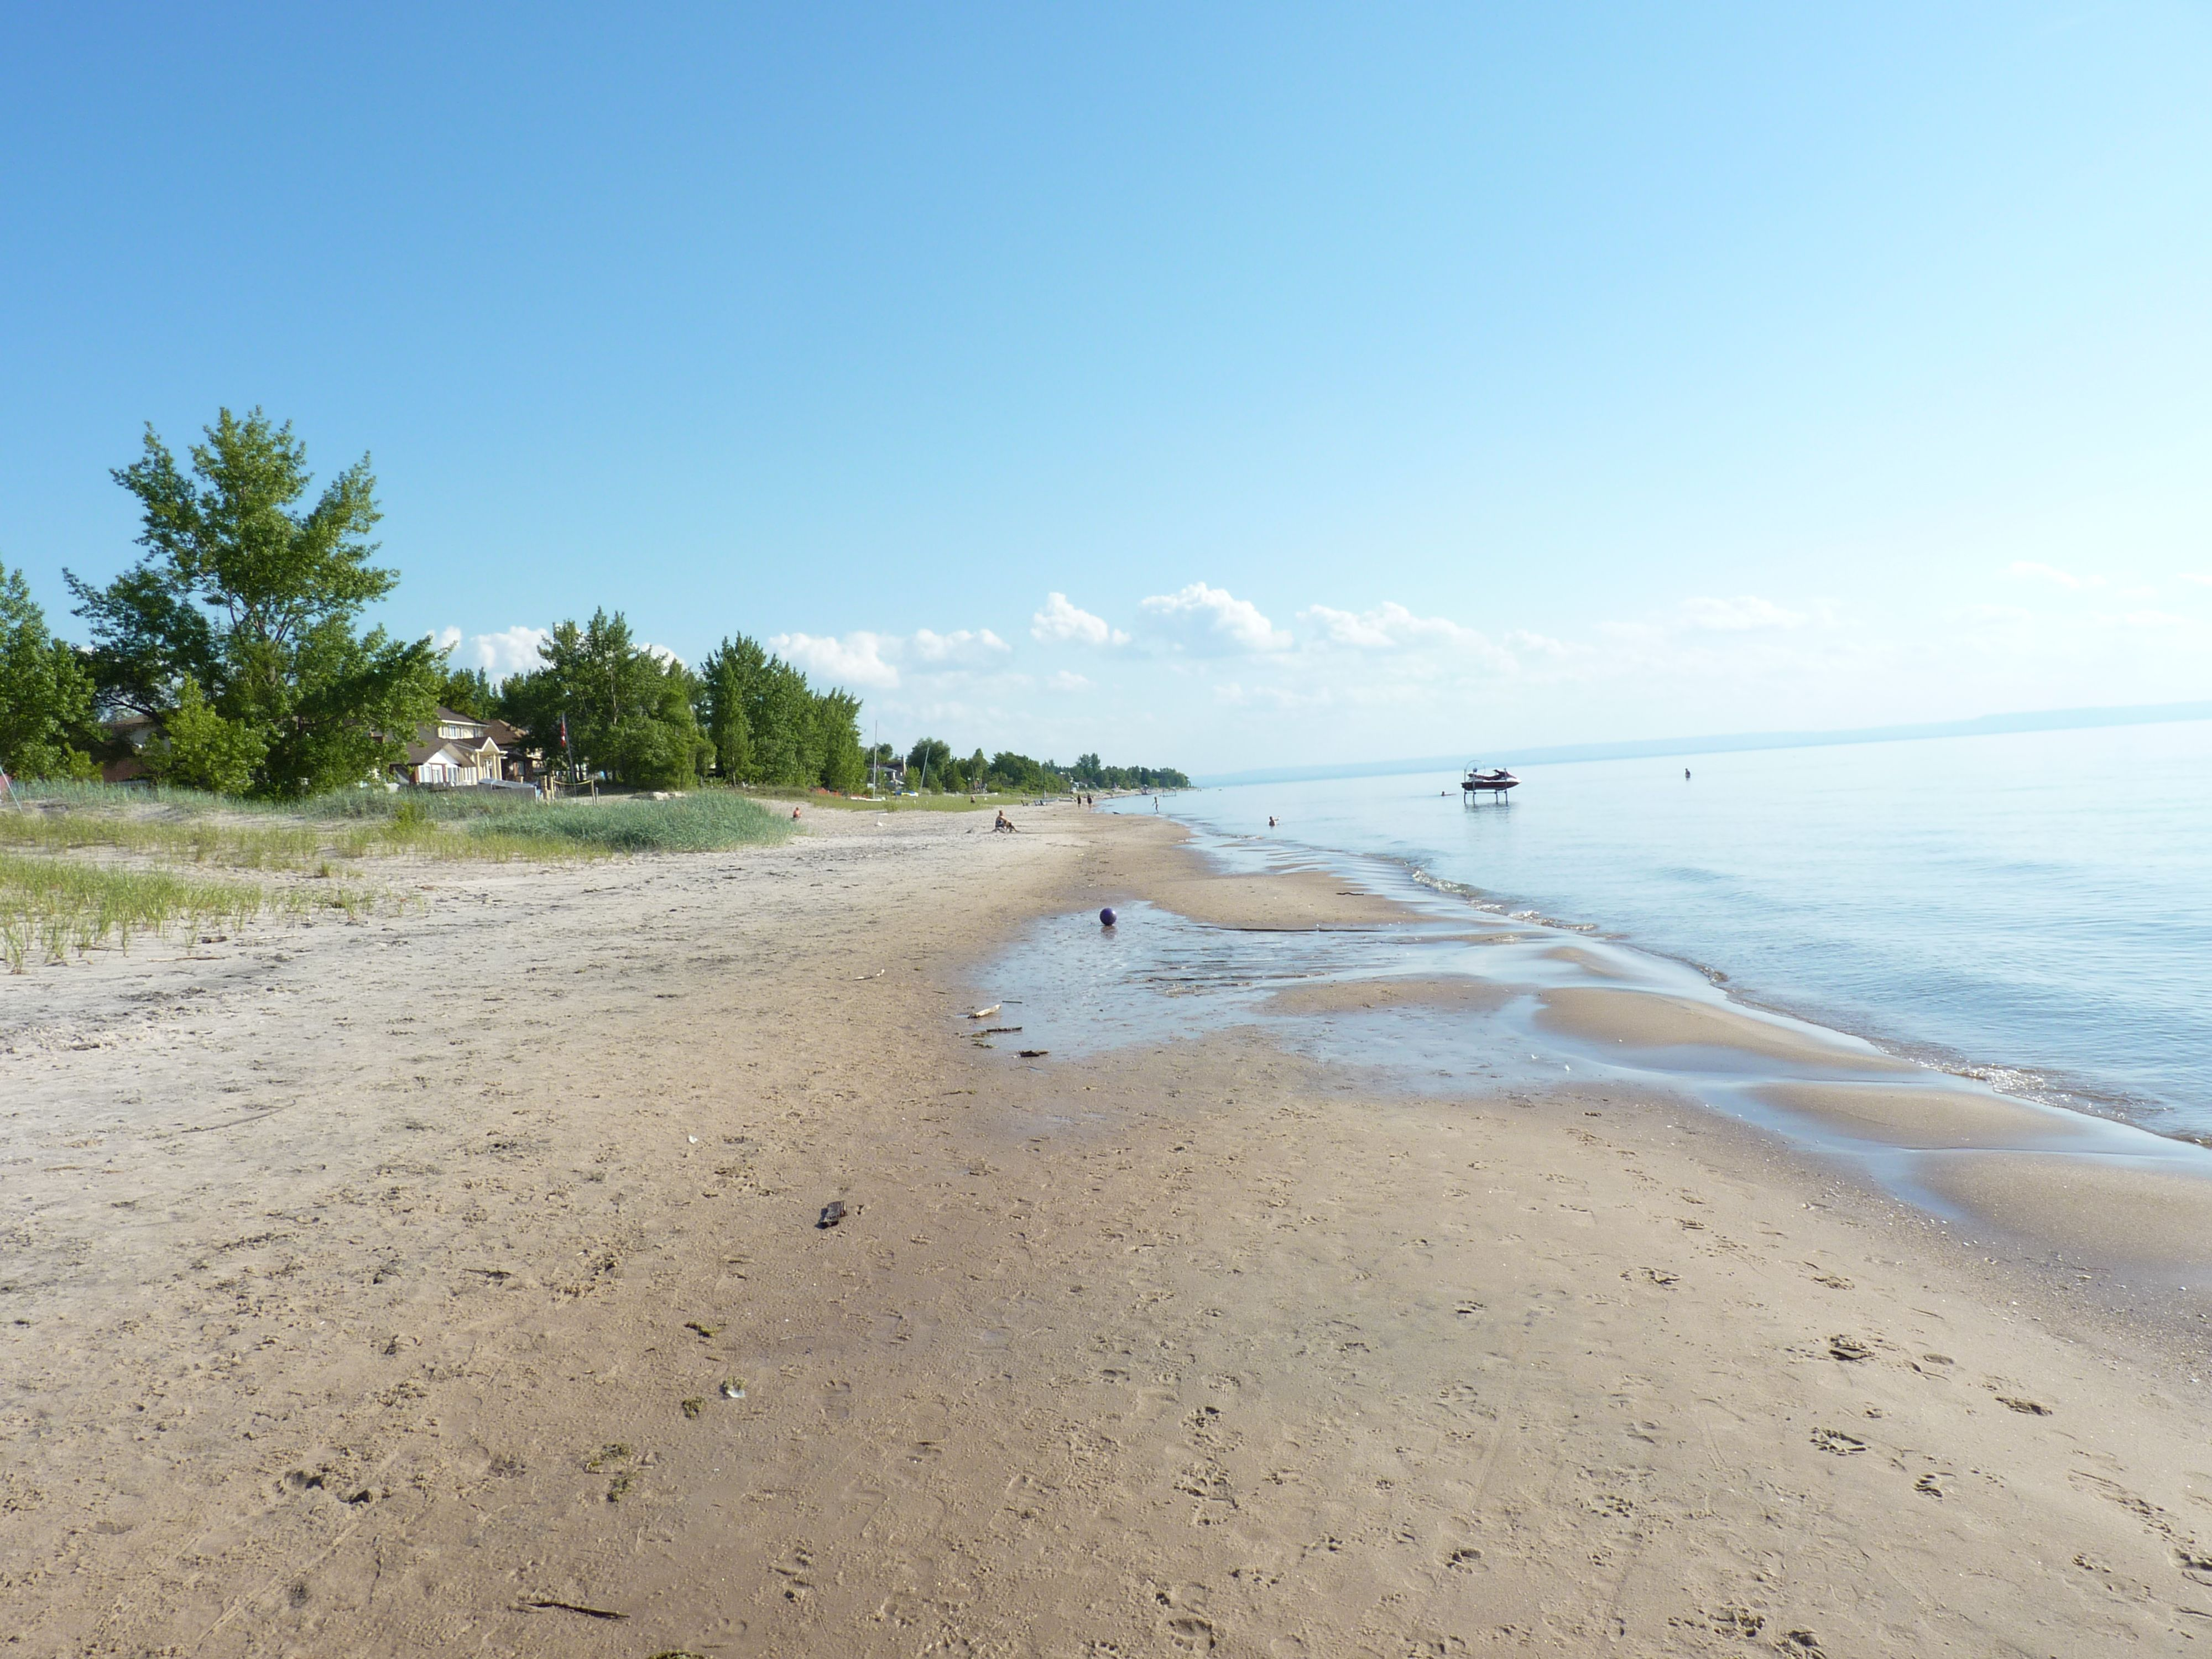 other beach font links tree cottage logo rentals ontario cottages wasaga wht cardo